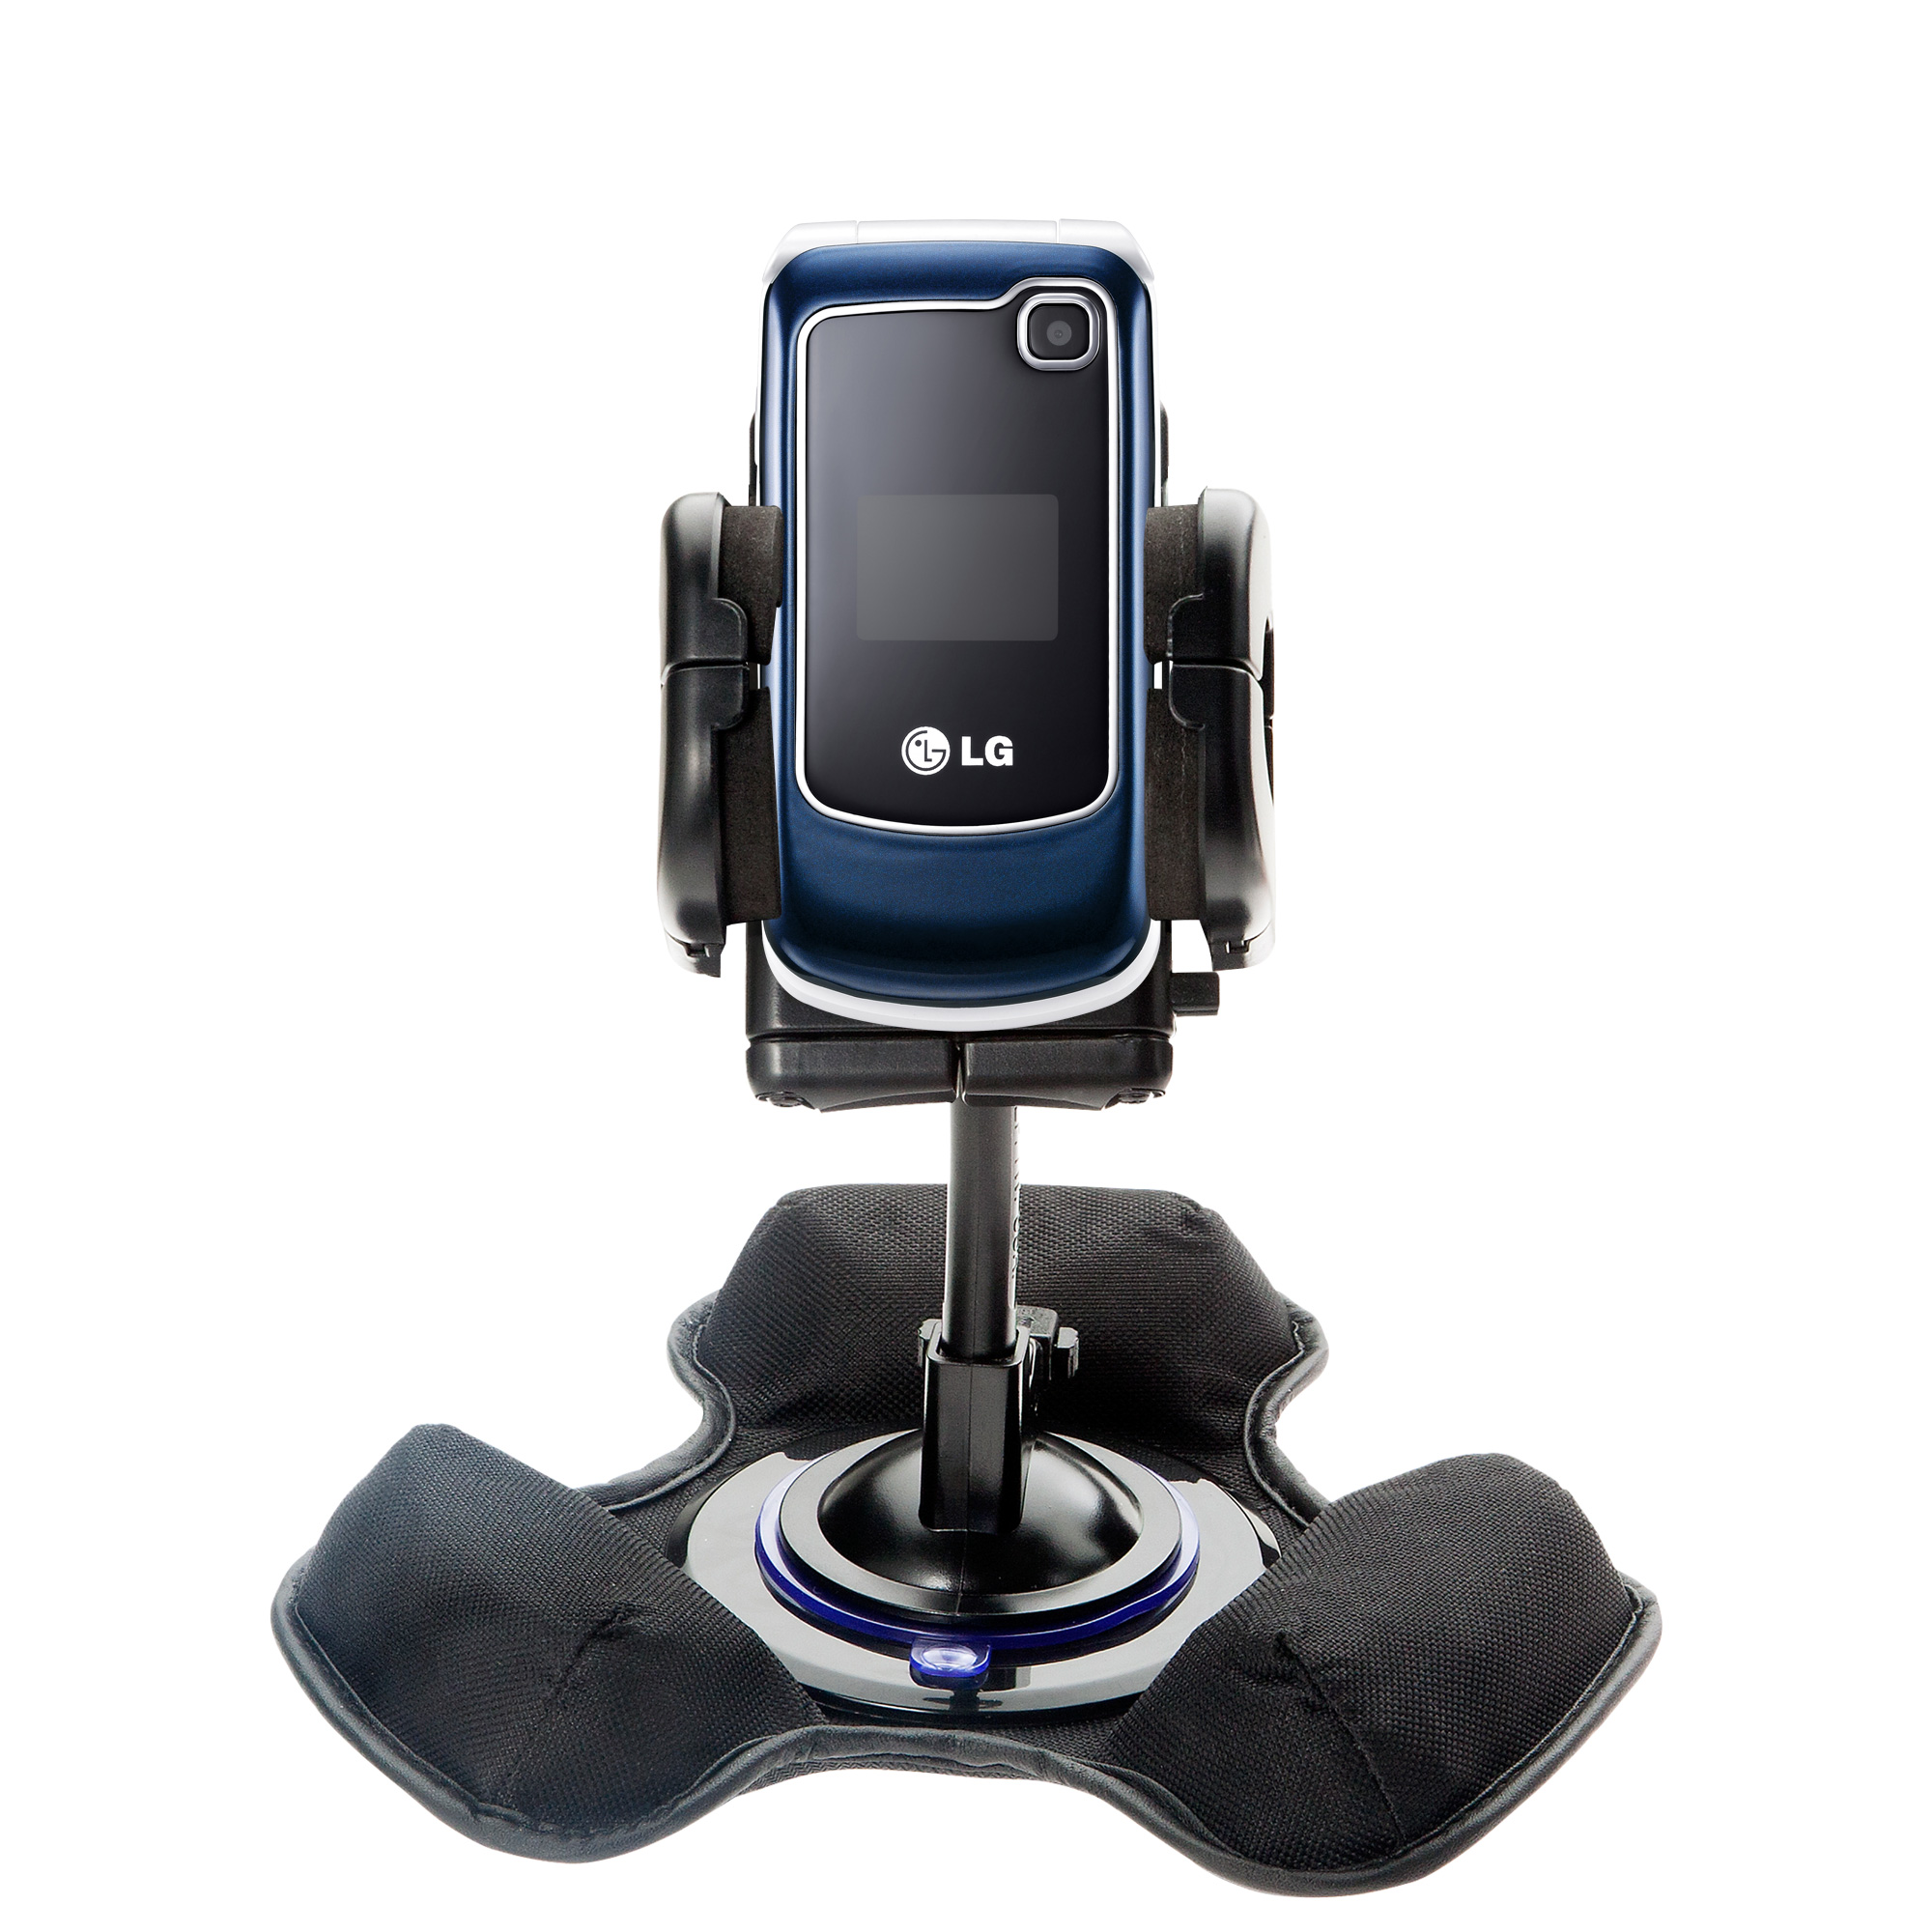 Dash and Windshield Holder compatible with the LG GB250